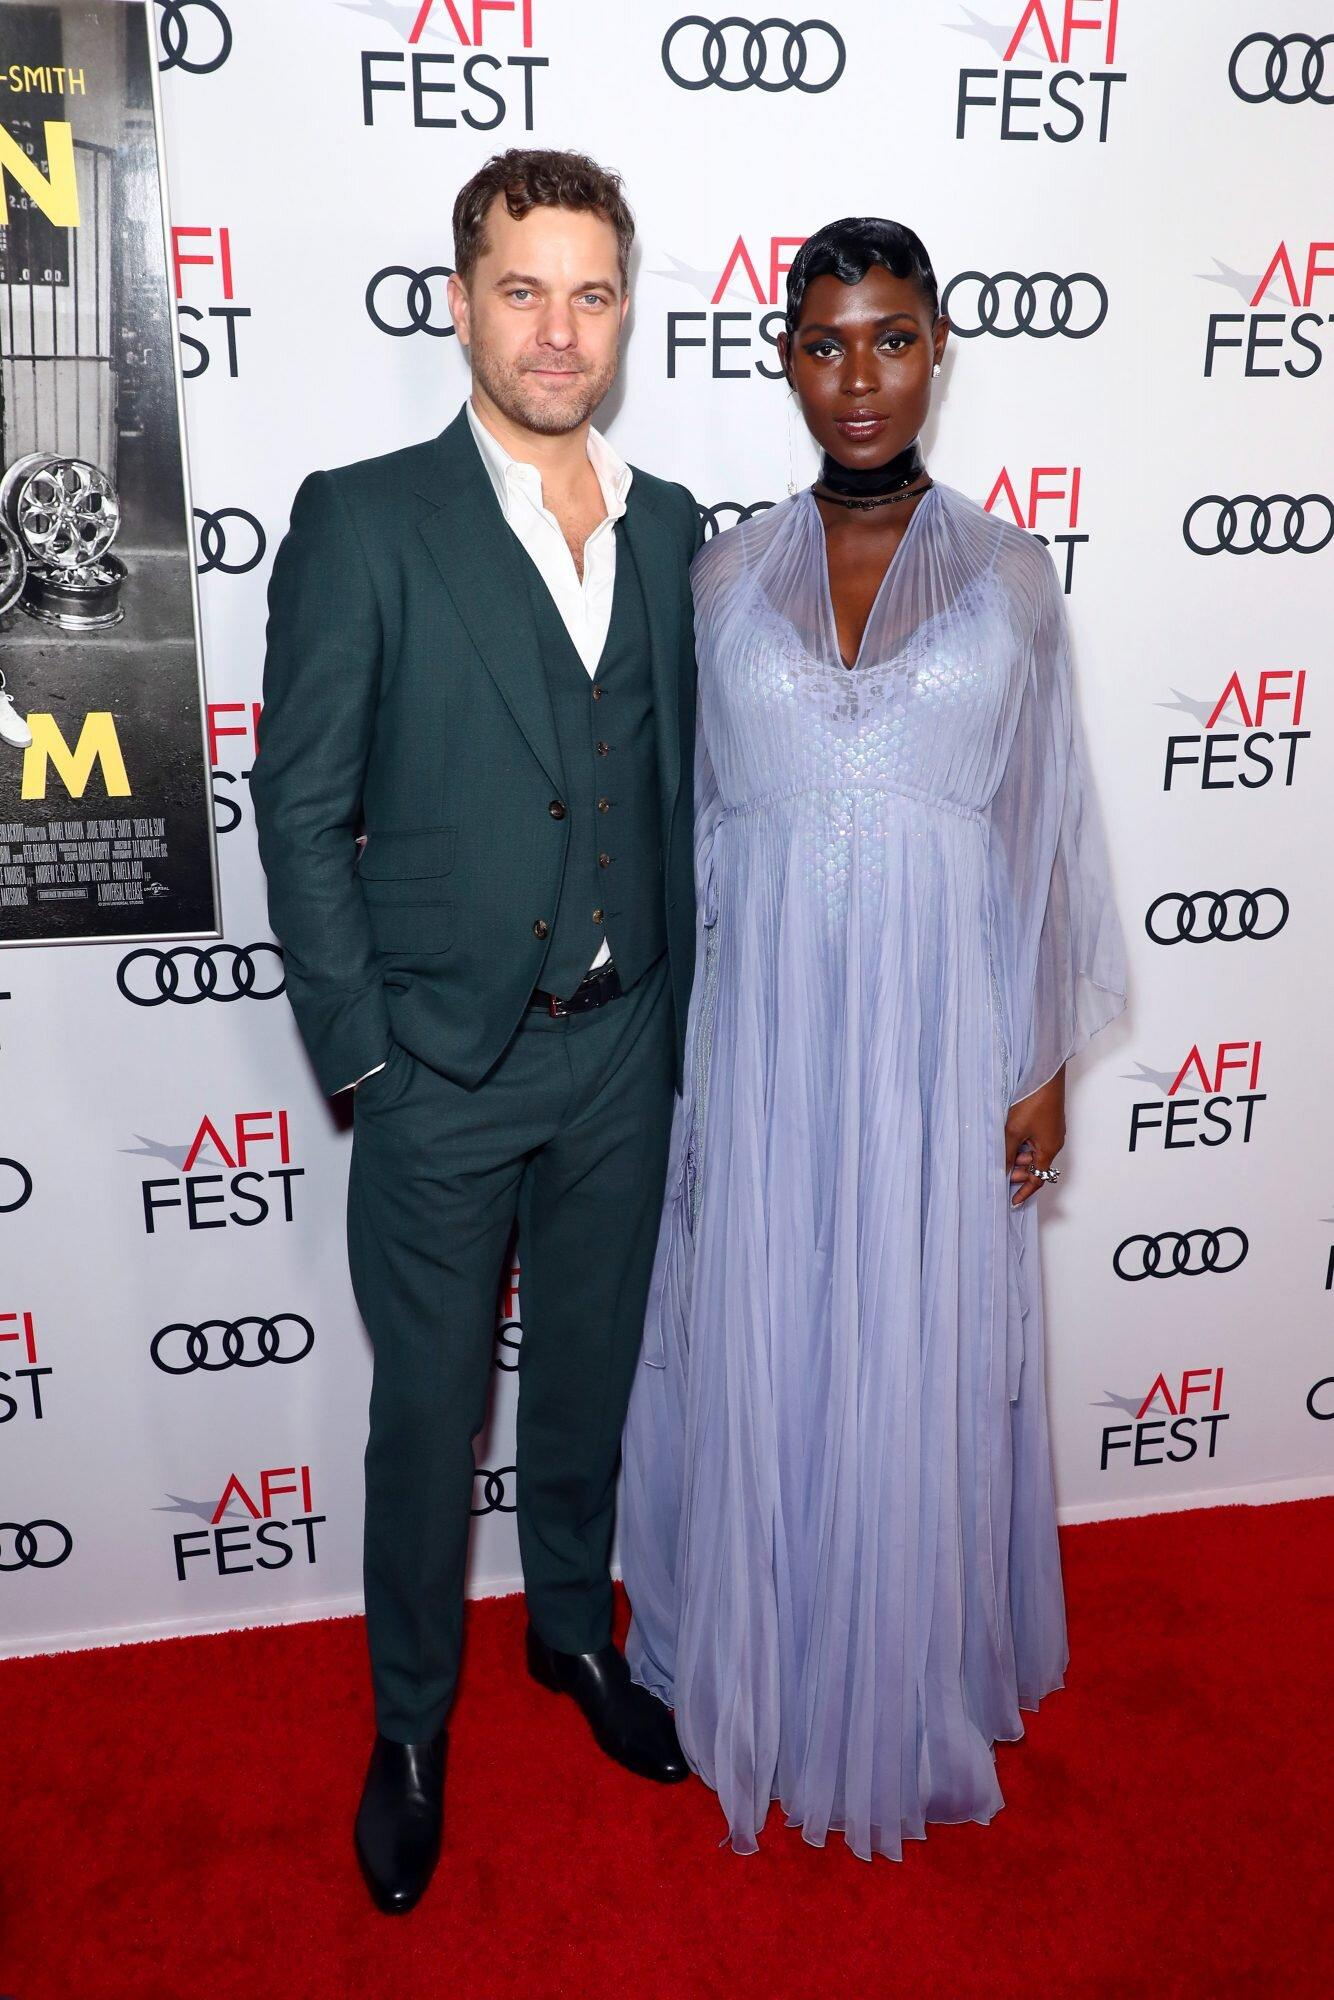 Jodie Turner-Smith Reveals She Had a 'One-Night Stand' with Joshua Jackson When They First Met